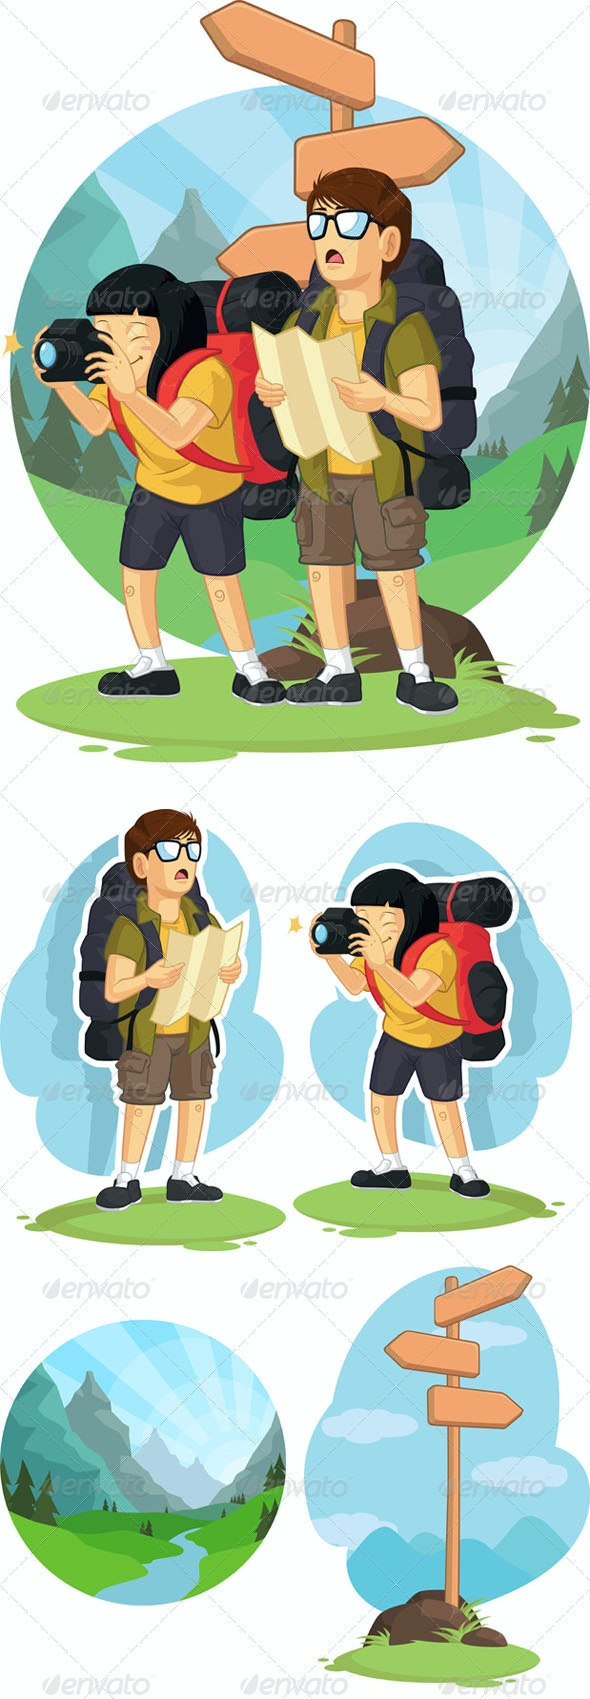 Mountain Hiking or Backpacking - Travel Conceptual